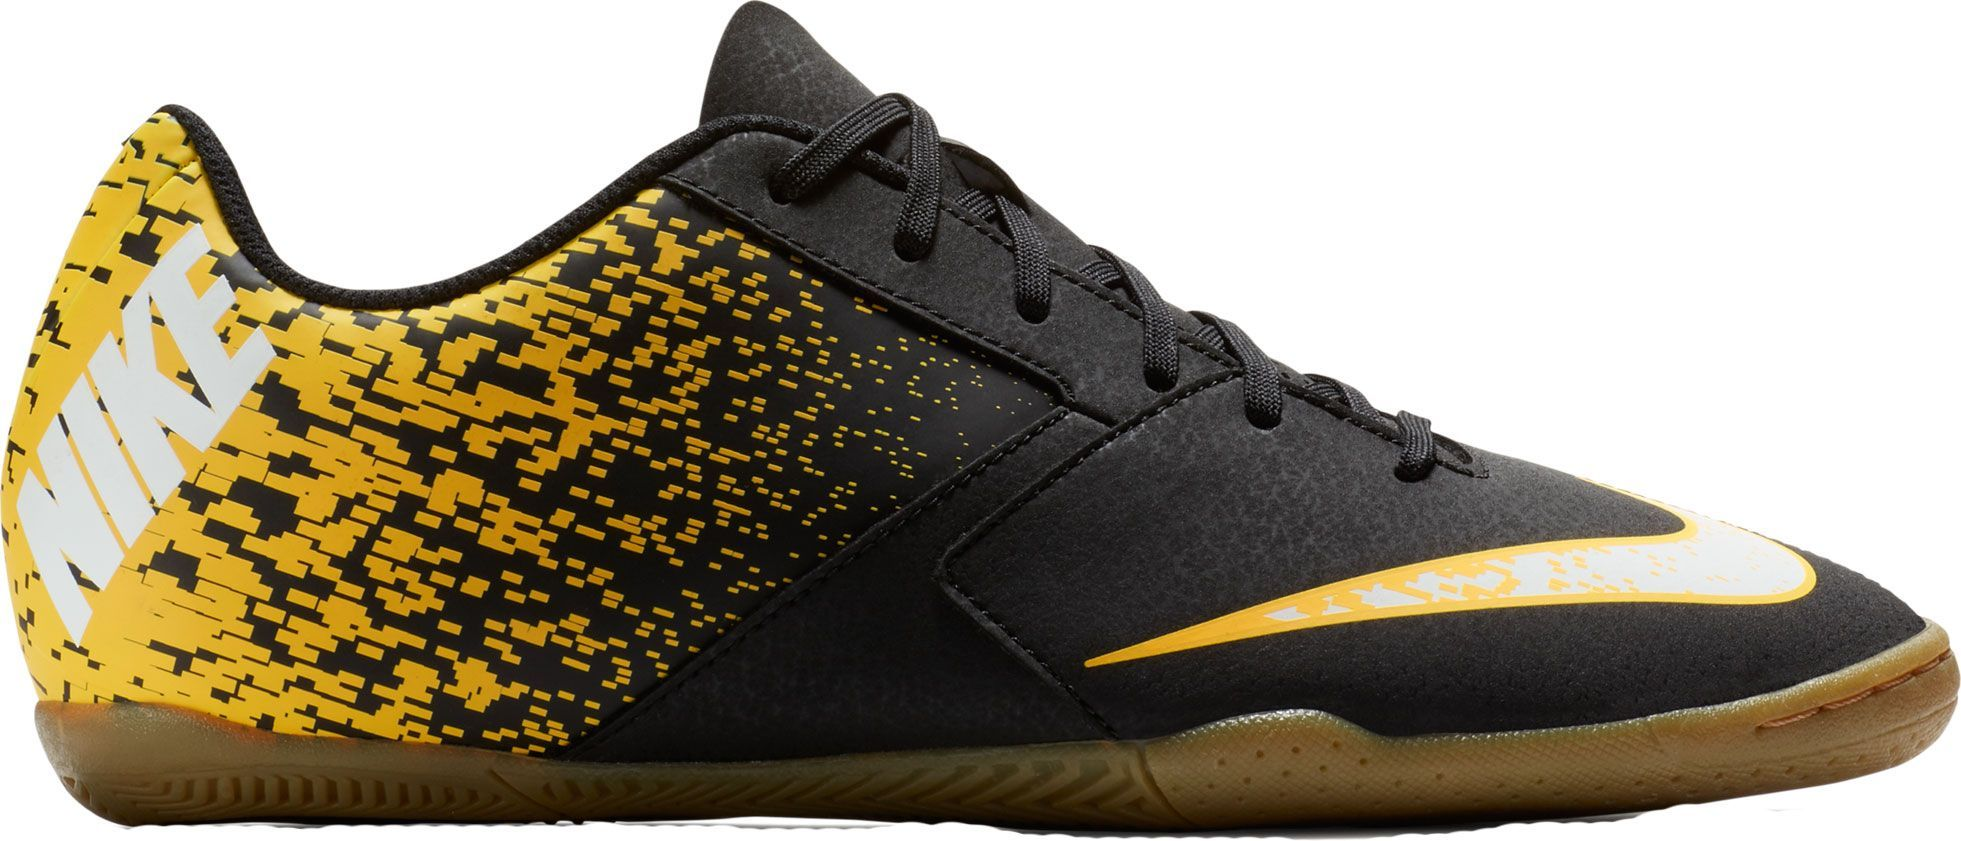 1765a3a16 Nike Men s BombaX Indoor Soccer Shoes